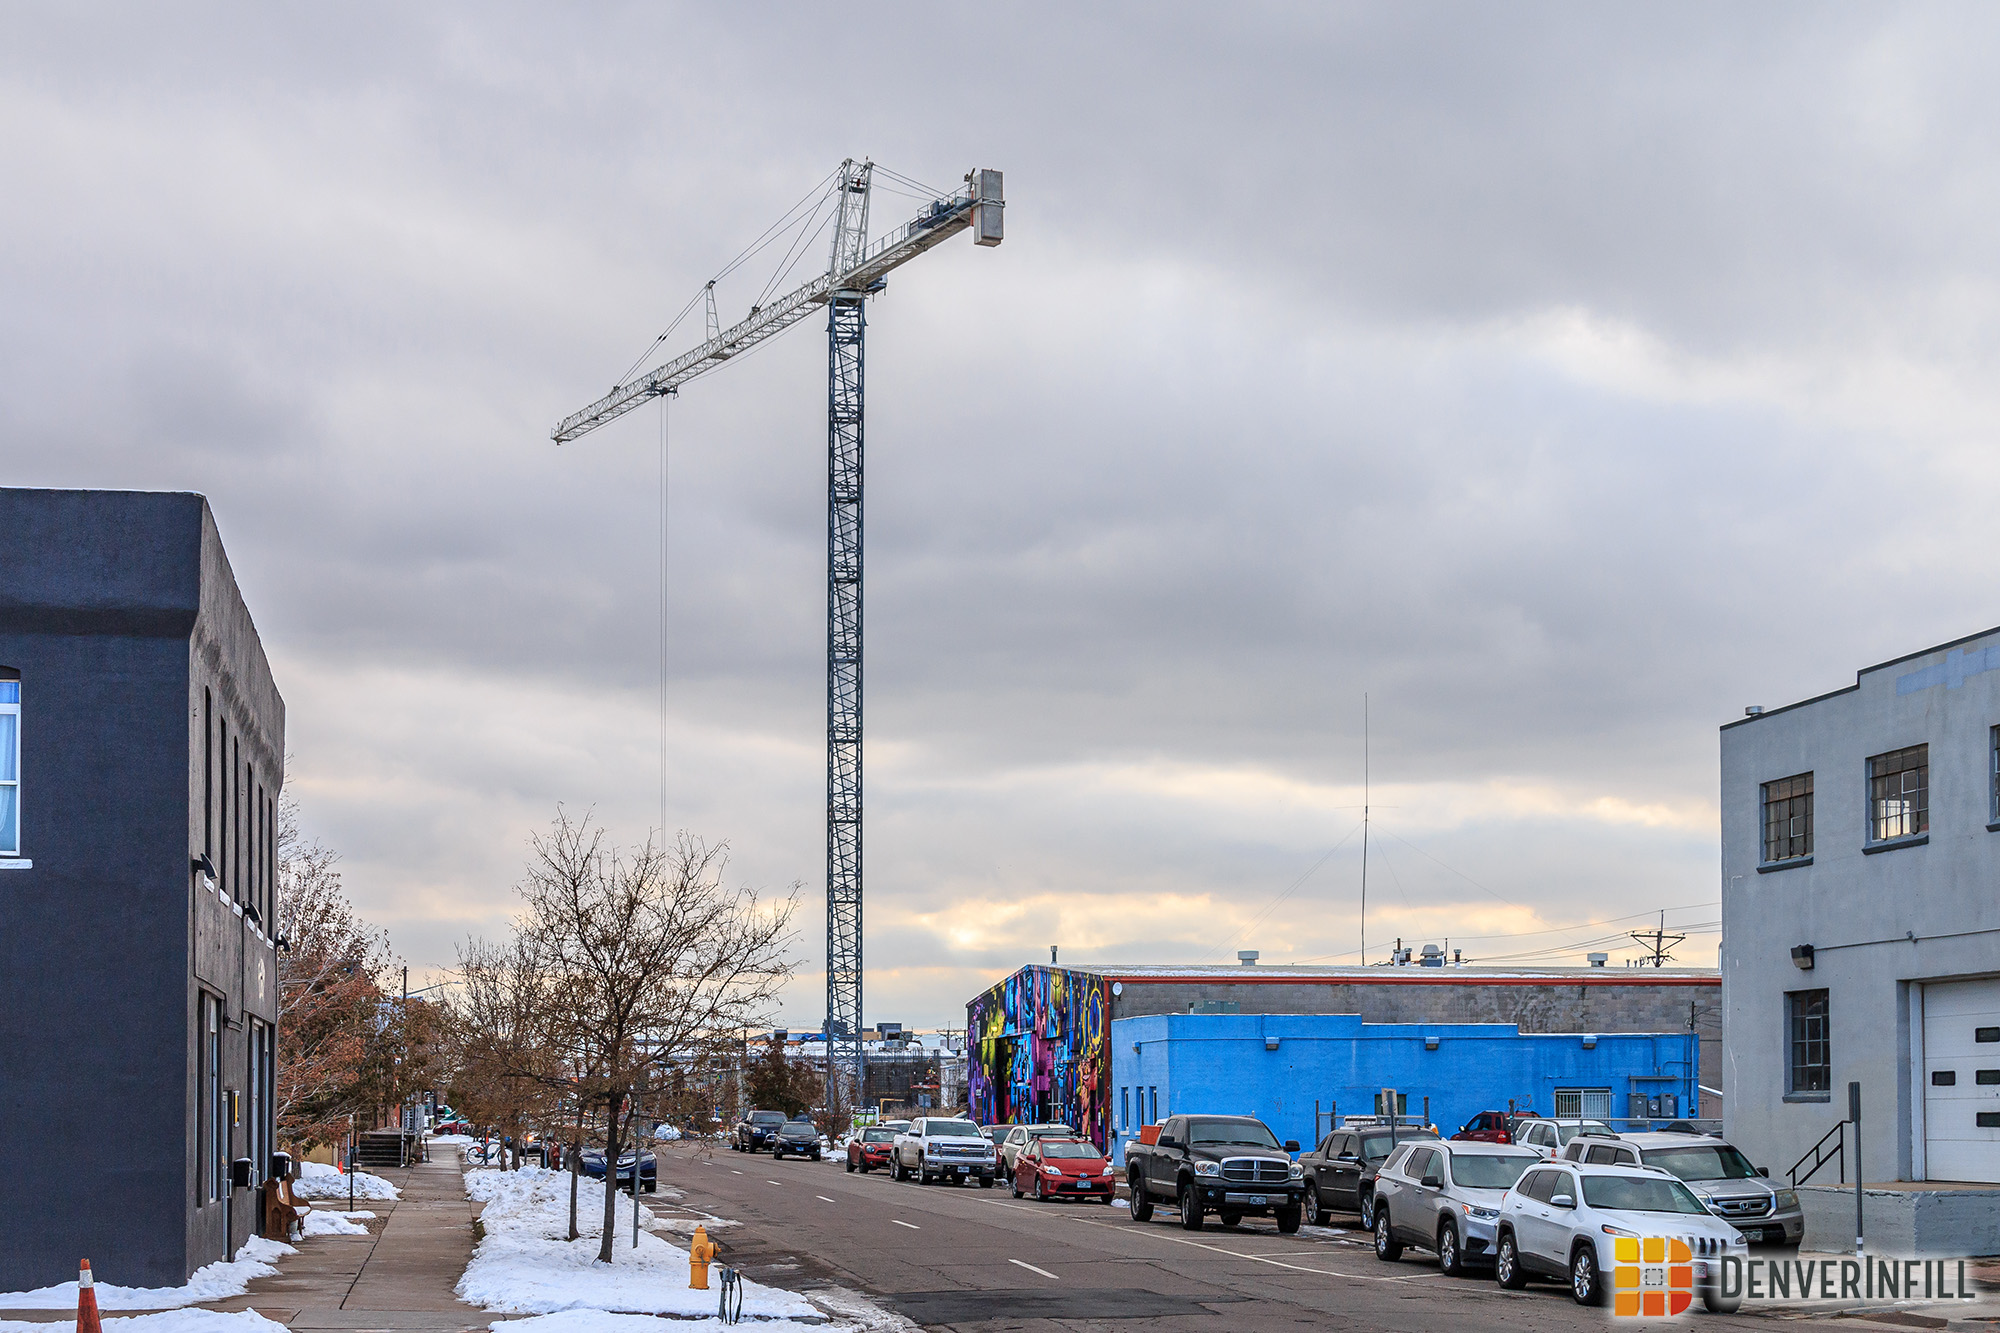 3463 Walnut Tower Crane